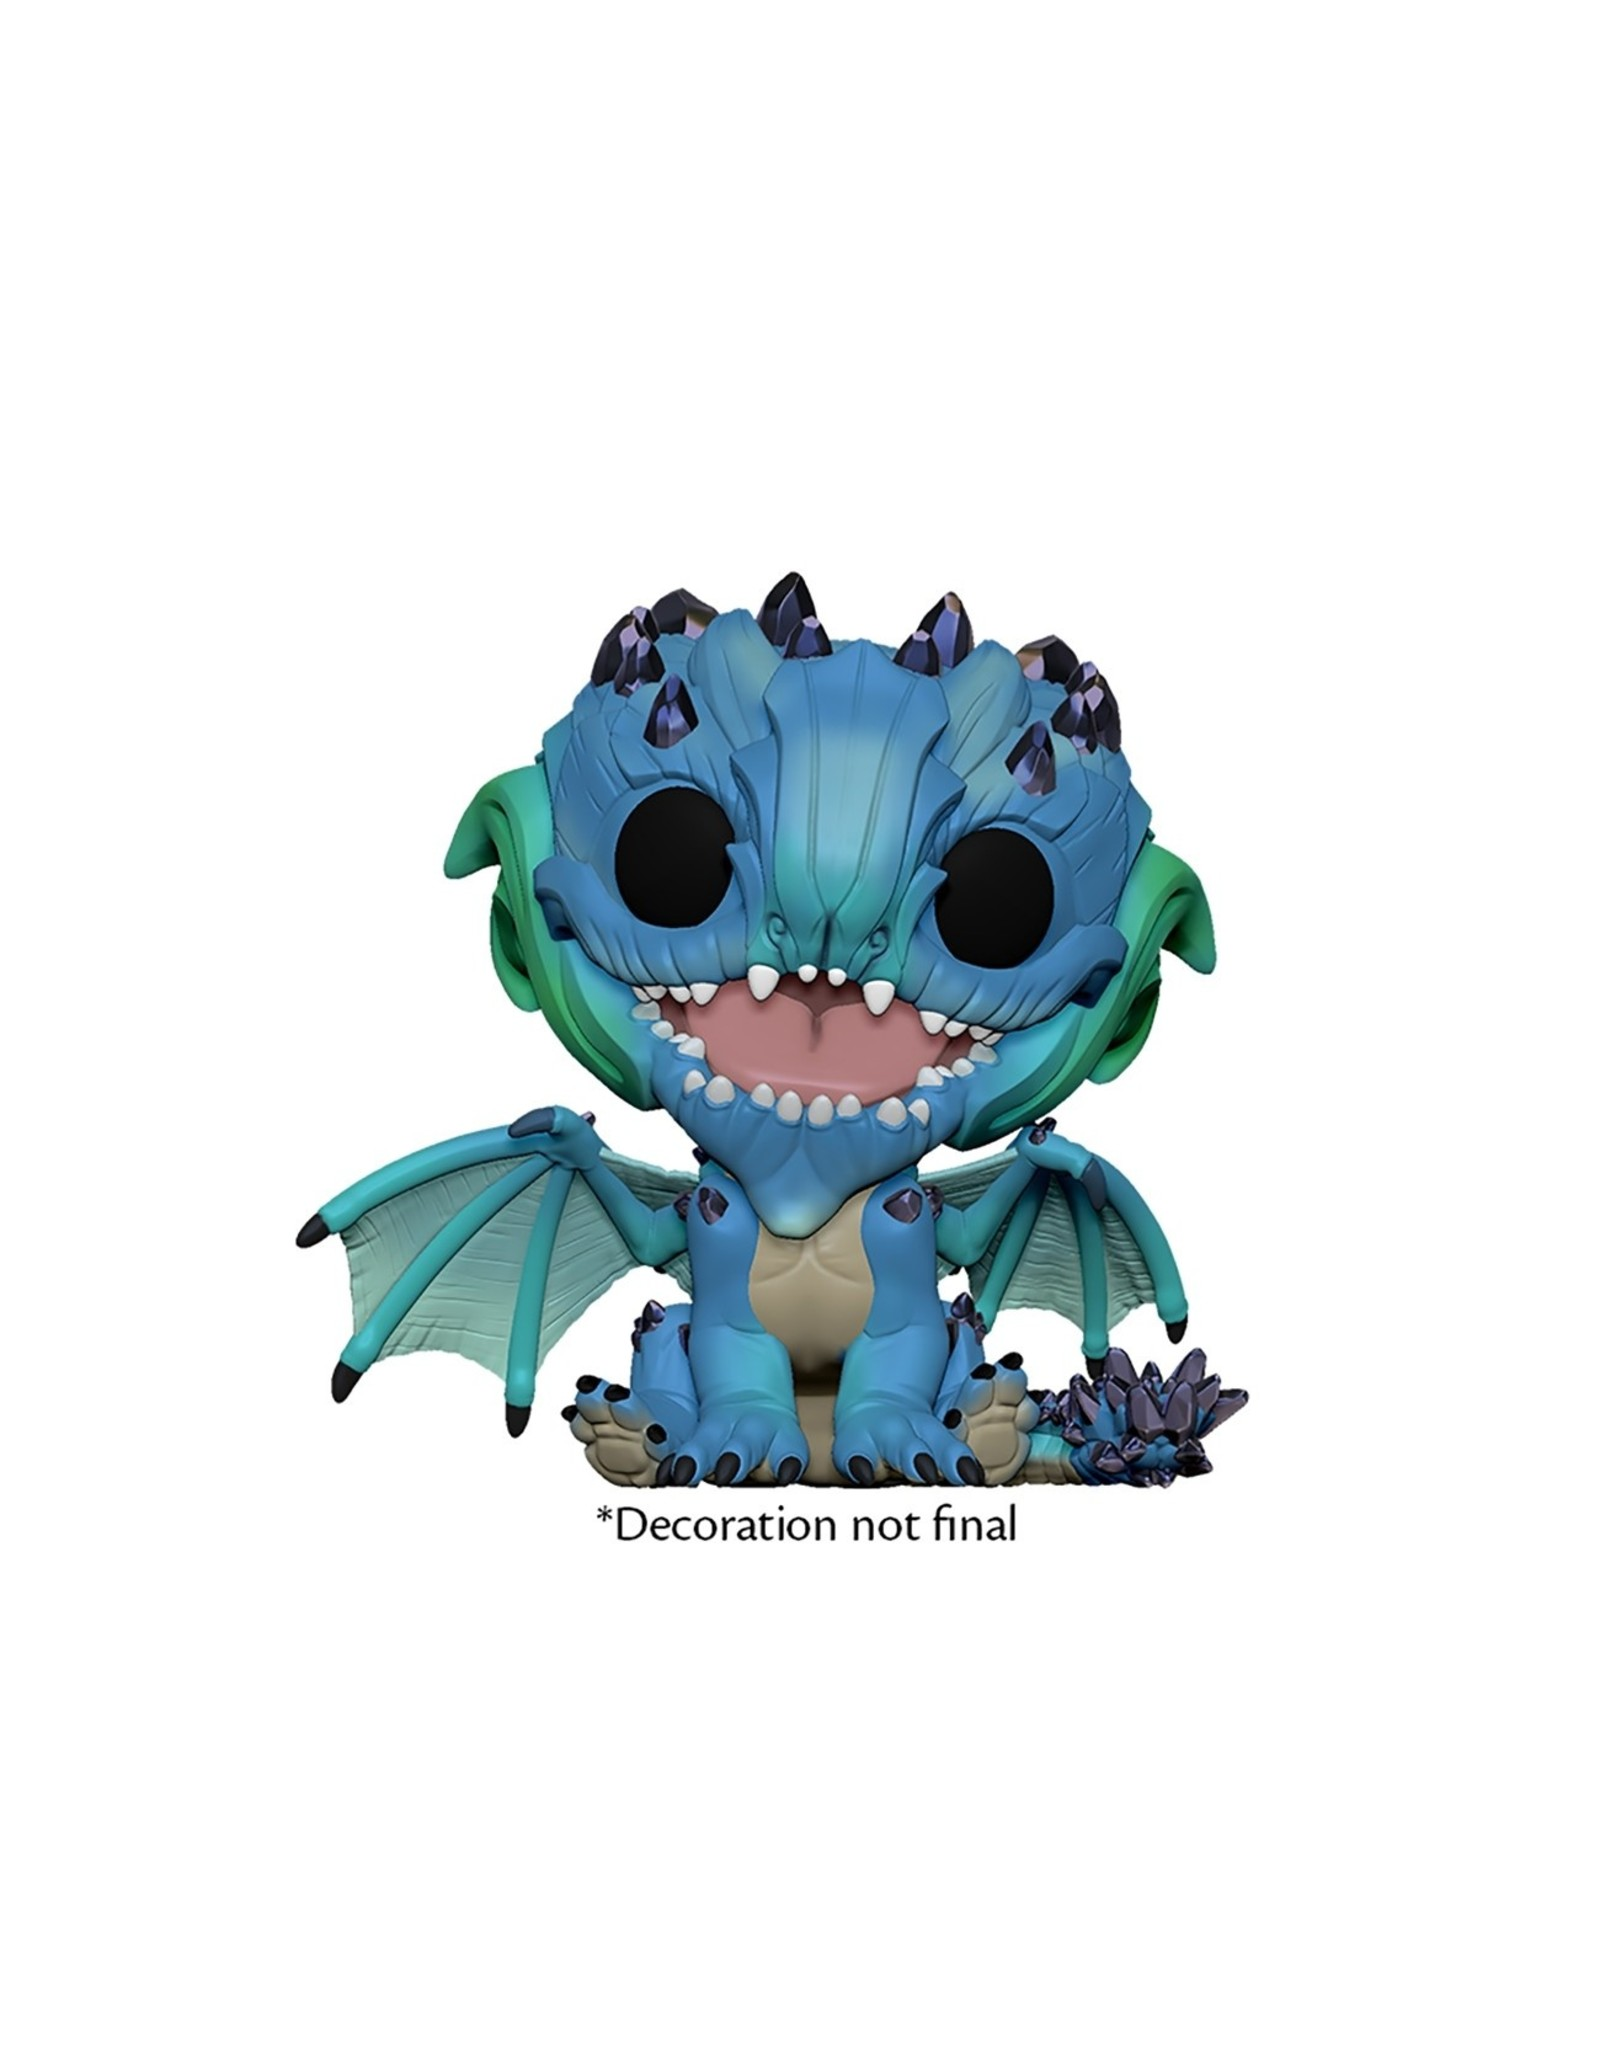 FUNKO POP GUILD WARS BABY AURENE VINYL FIG